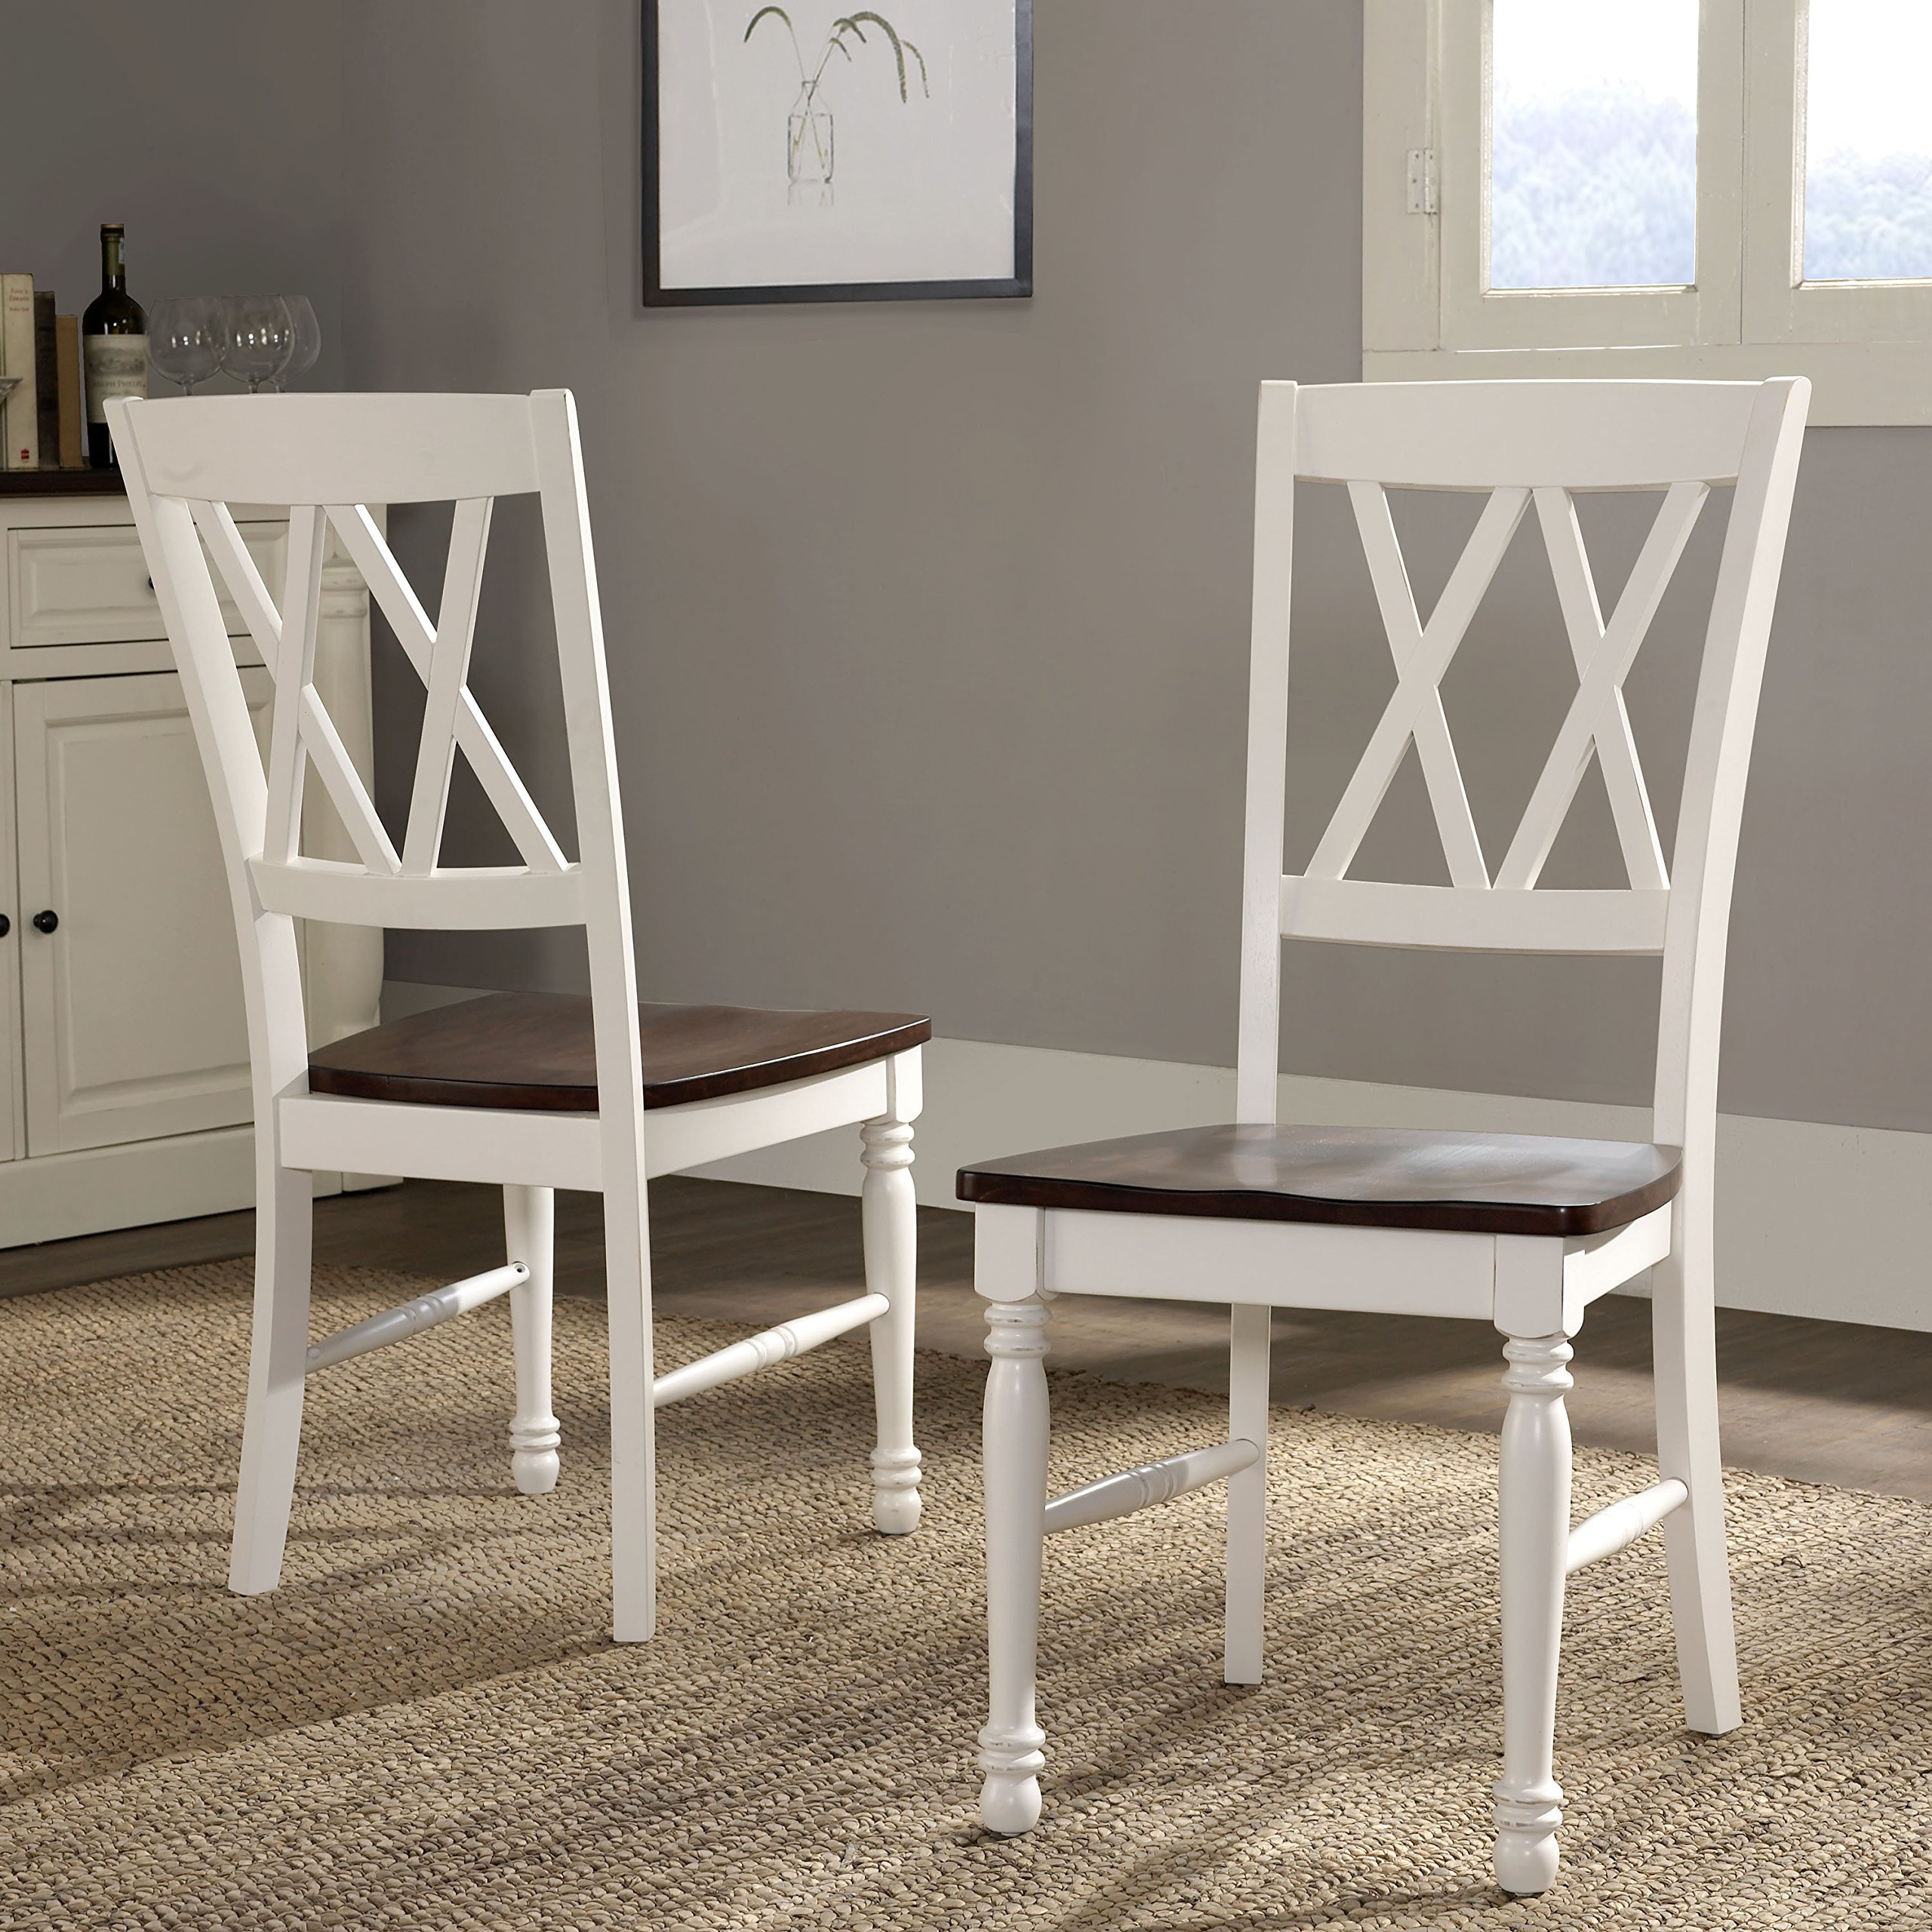 Crosley Furniture CF501018-WH Shelby Dining Chairs (Set of 2), White by Crosley Furniture (Image #8)